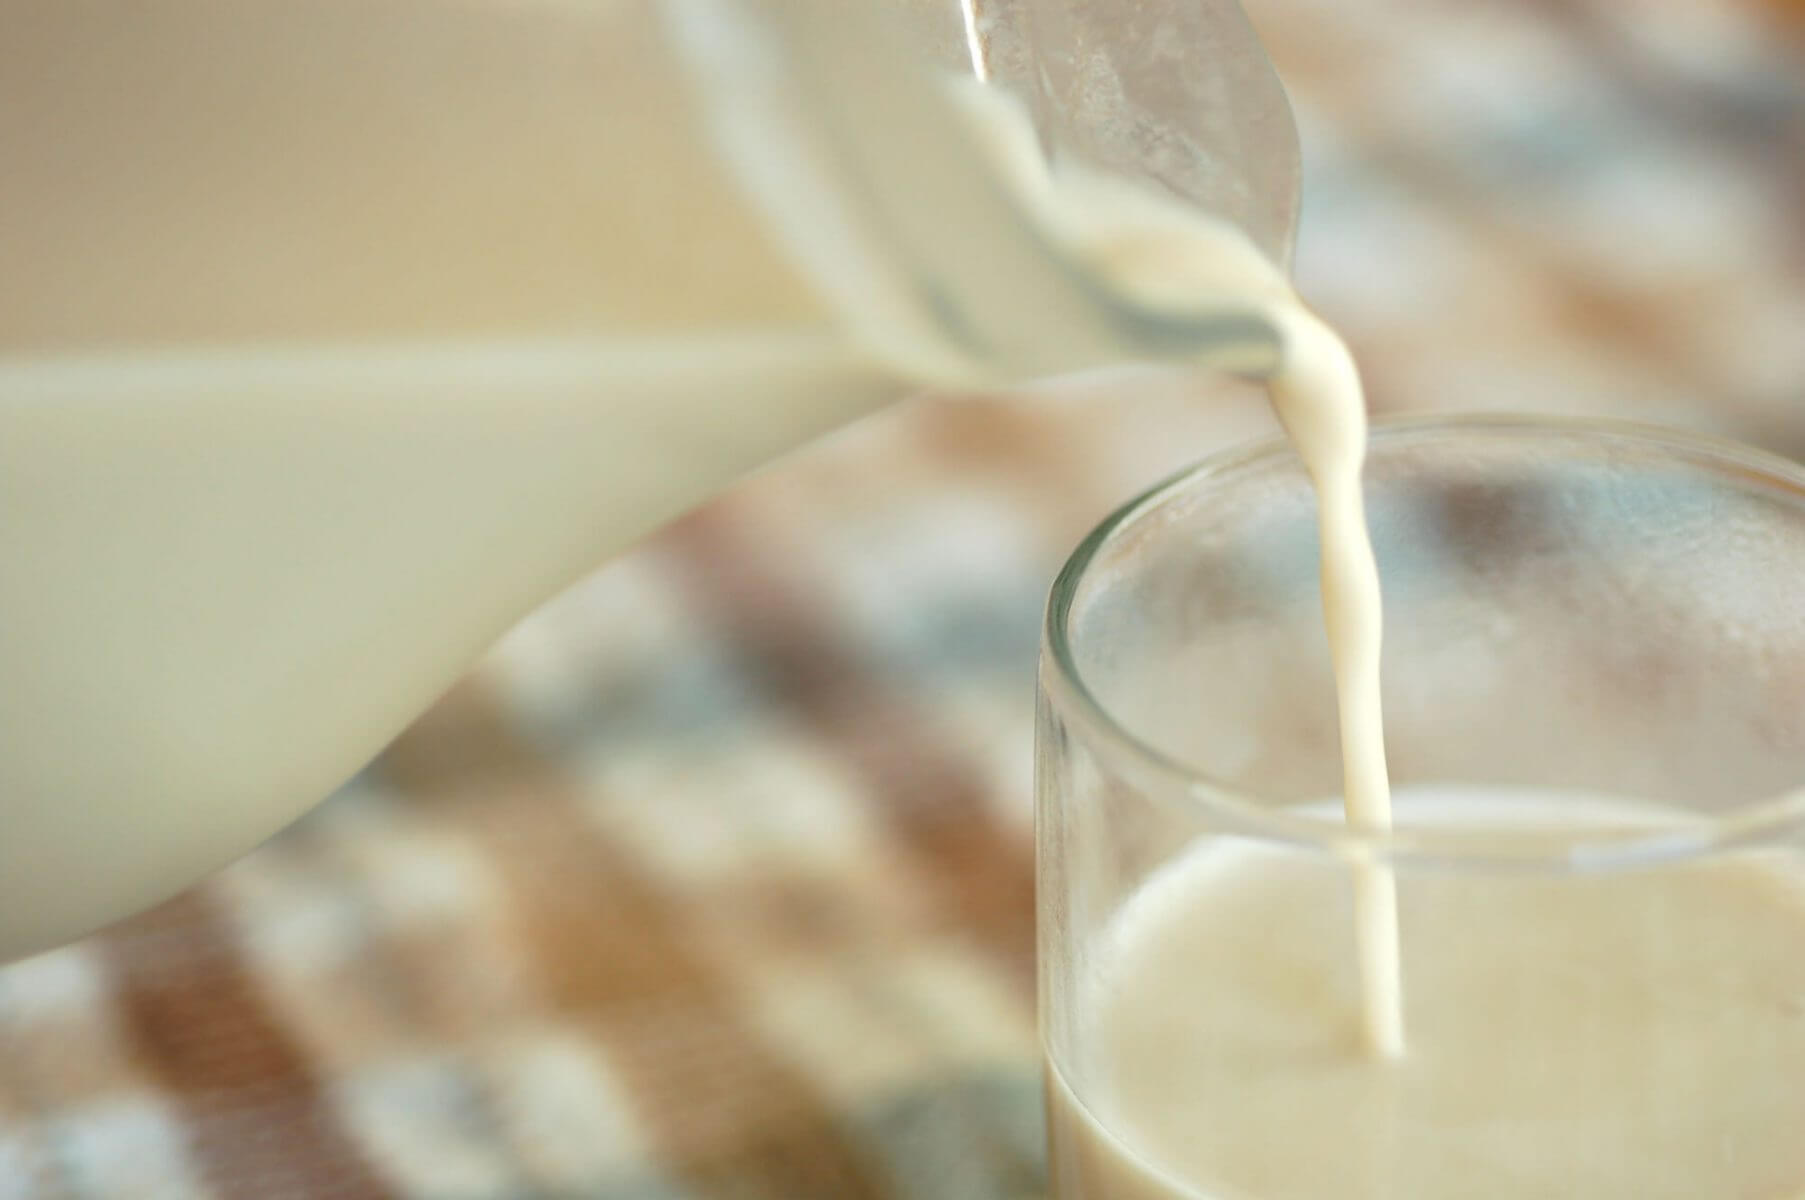 Raw Milk and Raw Cheese: Why You Should Avoid Them Both.